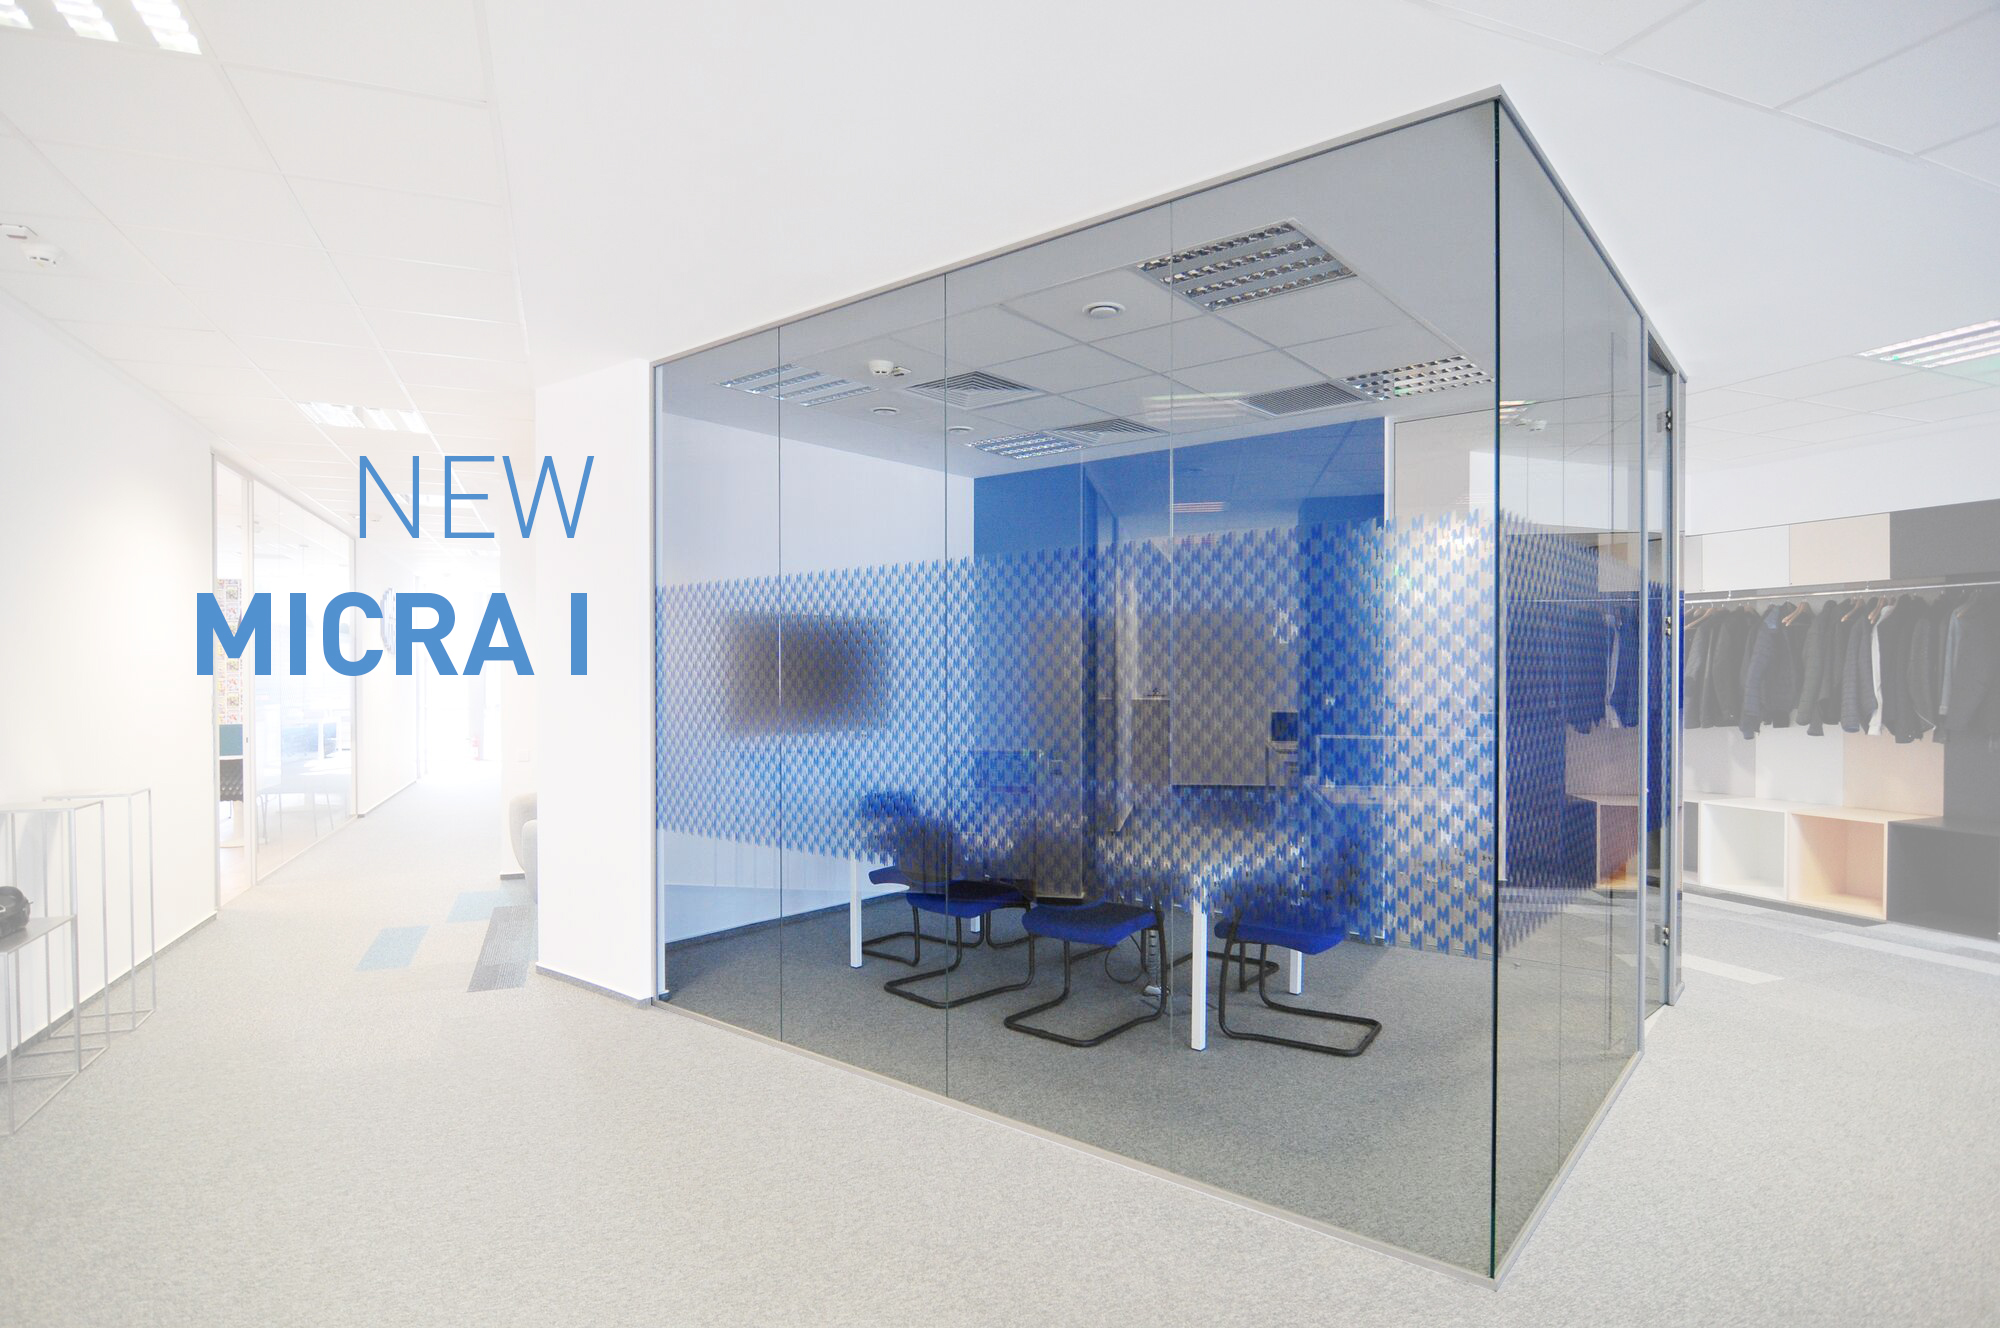 MICRA I, The thinnest partition with the best acoustic properties